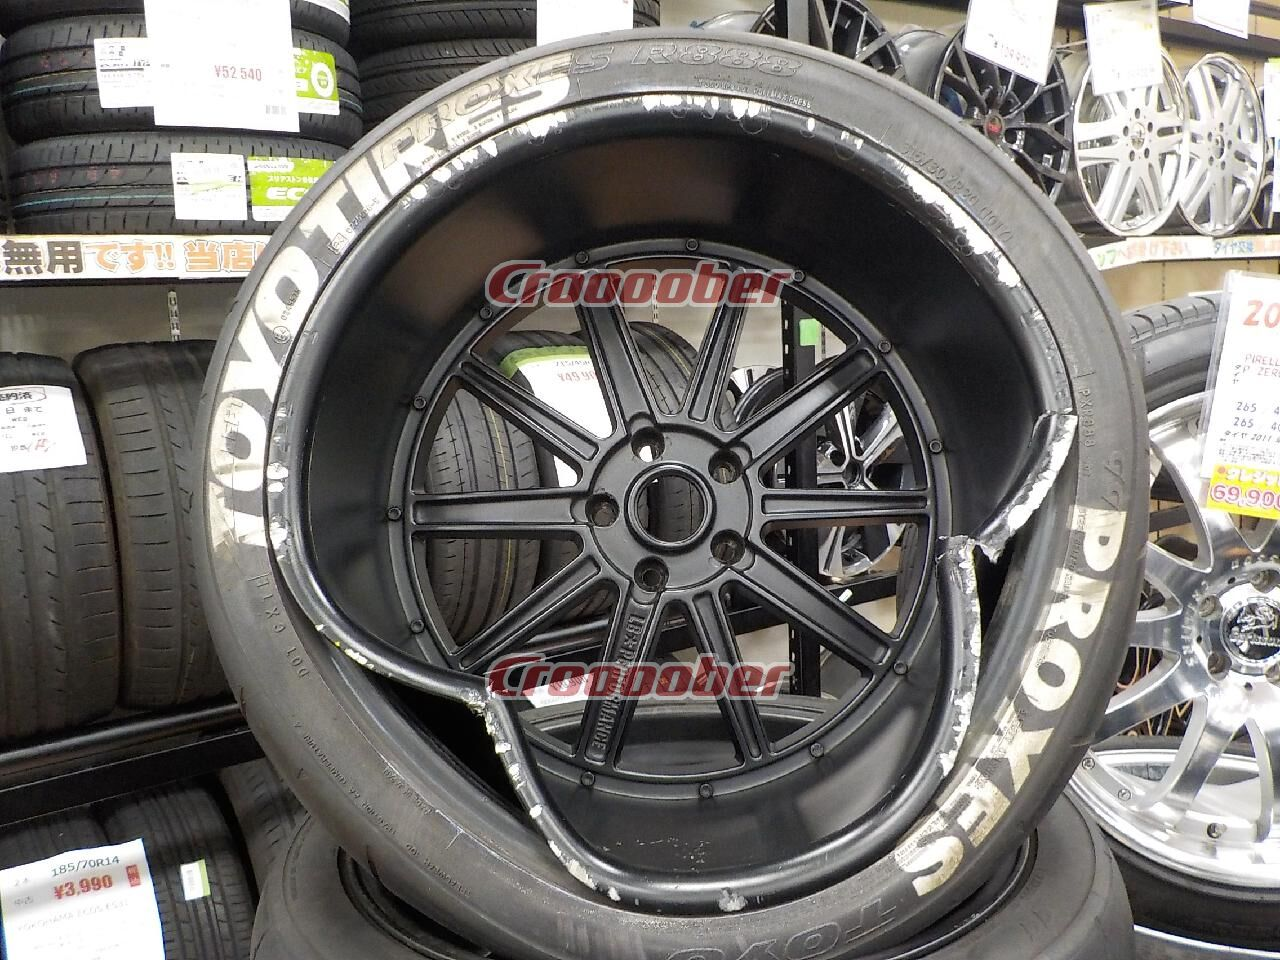 Toyo Proxes R888 >> Libaty Walk Gt R Complete Kit Wheel Toyo Proxes R888 One Is A Waste We Lowered Price Front 11 0jx20 11 Rear 12 0jx20 72114 3 5h For Sale